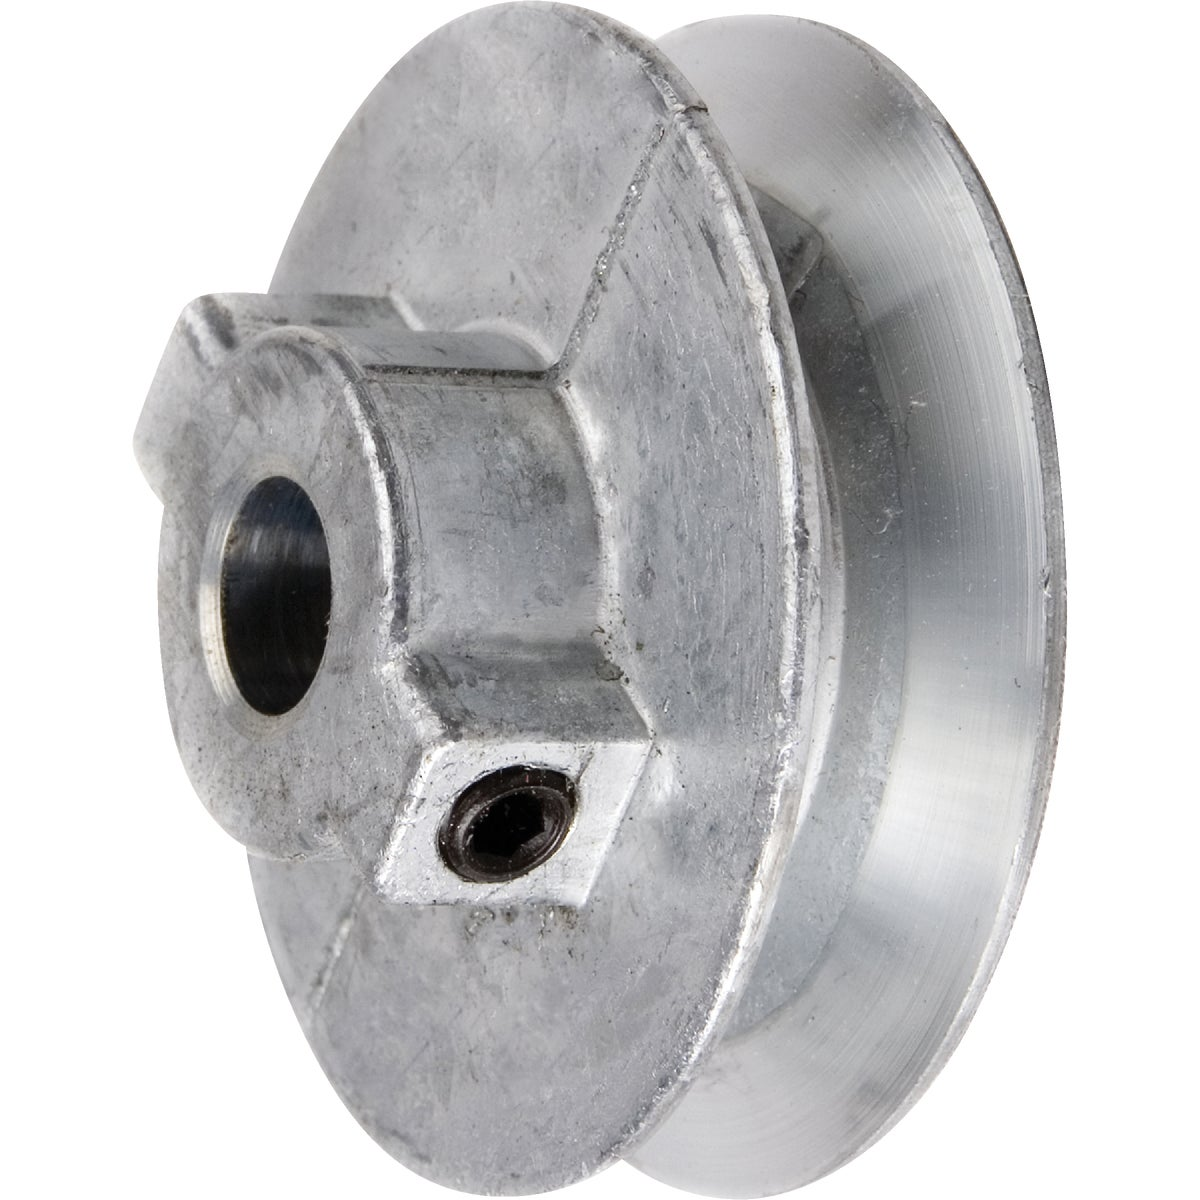 4-1/2X5/8 PULLEY - 450A6 by Chicago Die Casting